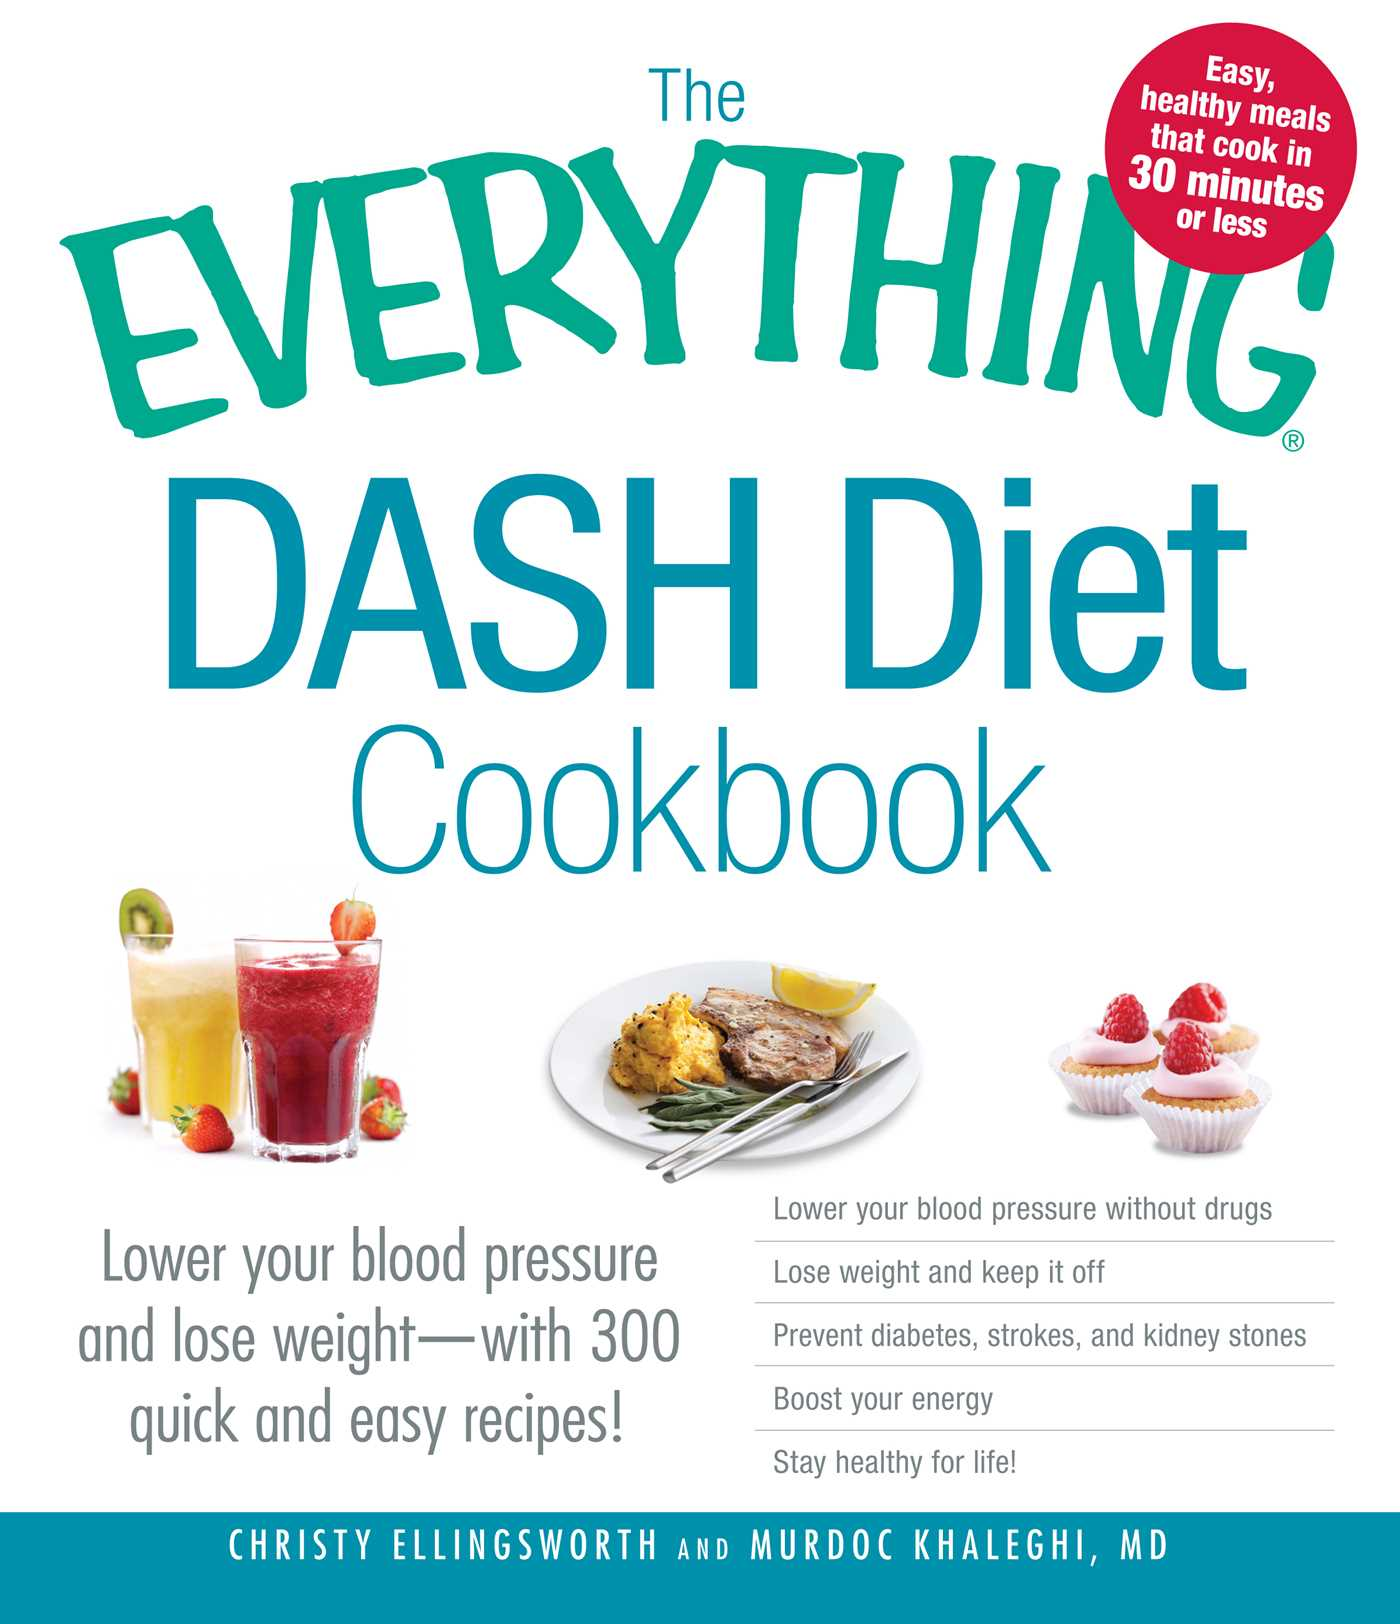 The everything dash diet cookbook book by christy ellingsworth lower your blood pressure and lose weight with 300 quick and easy recipes lower your blood pressure without drugs lose weight and keep it off forumfinder Gallery